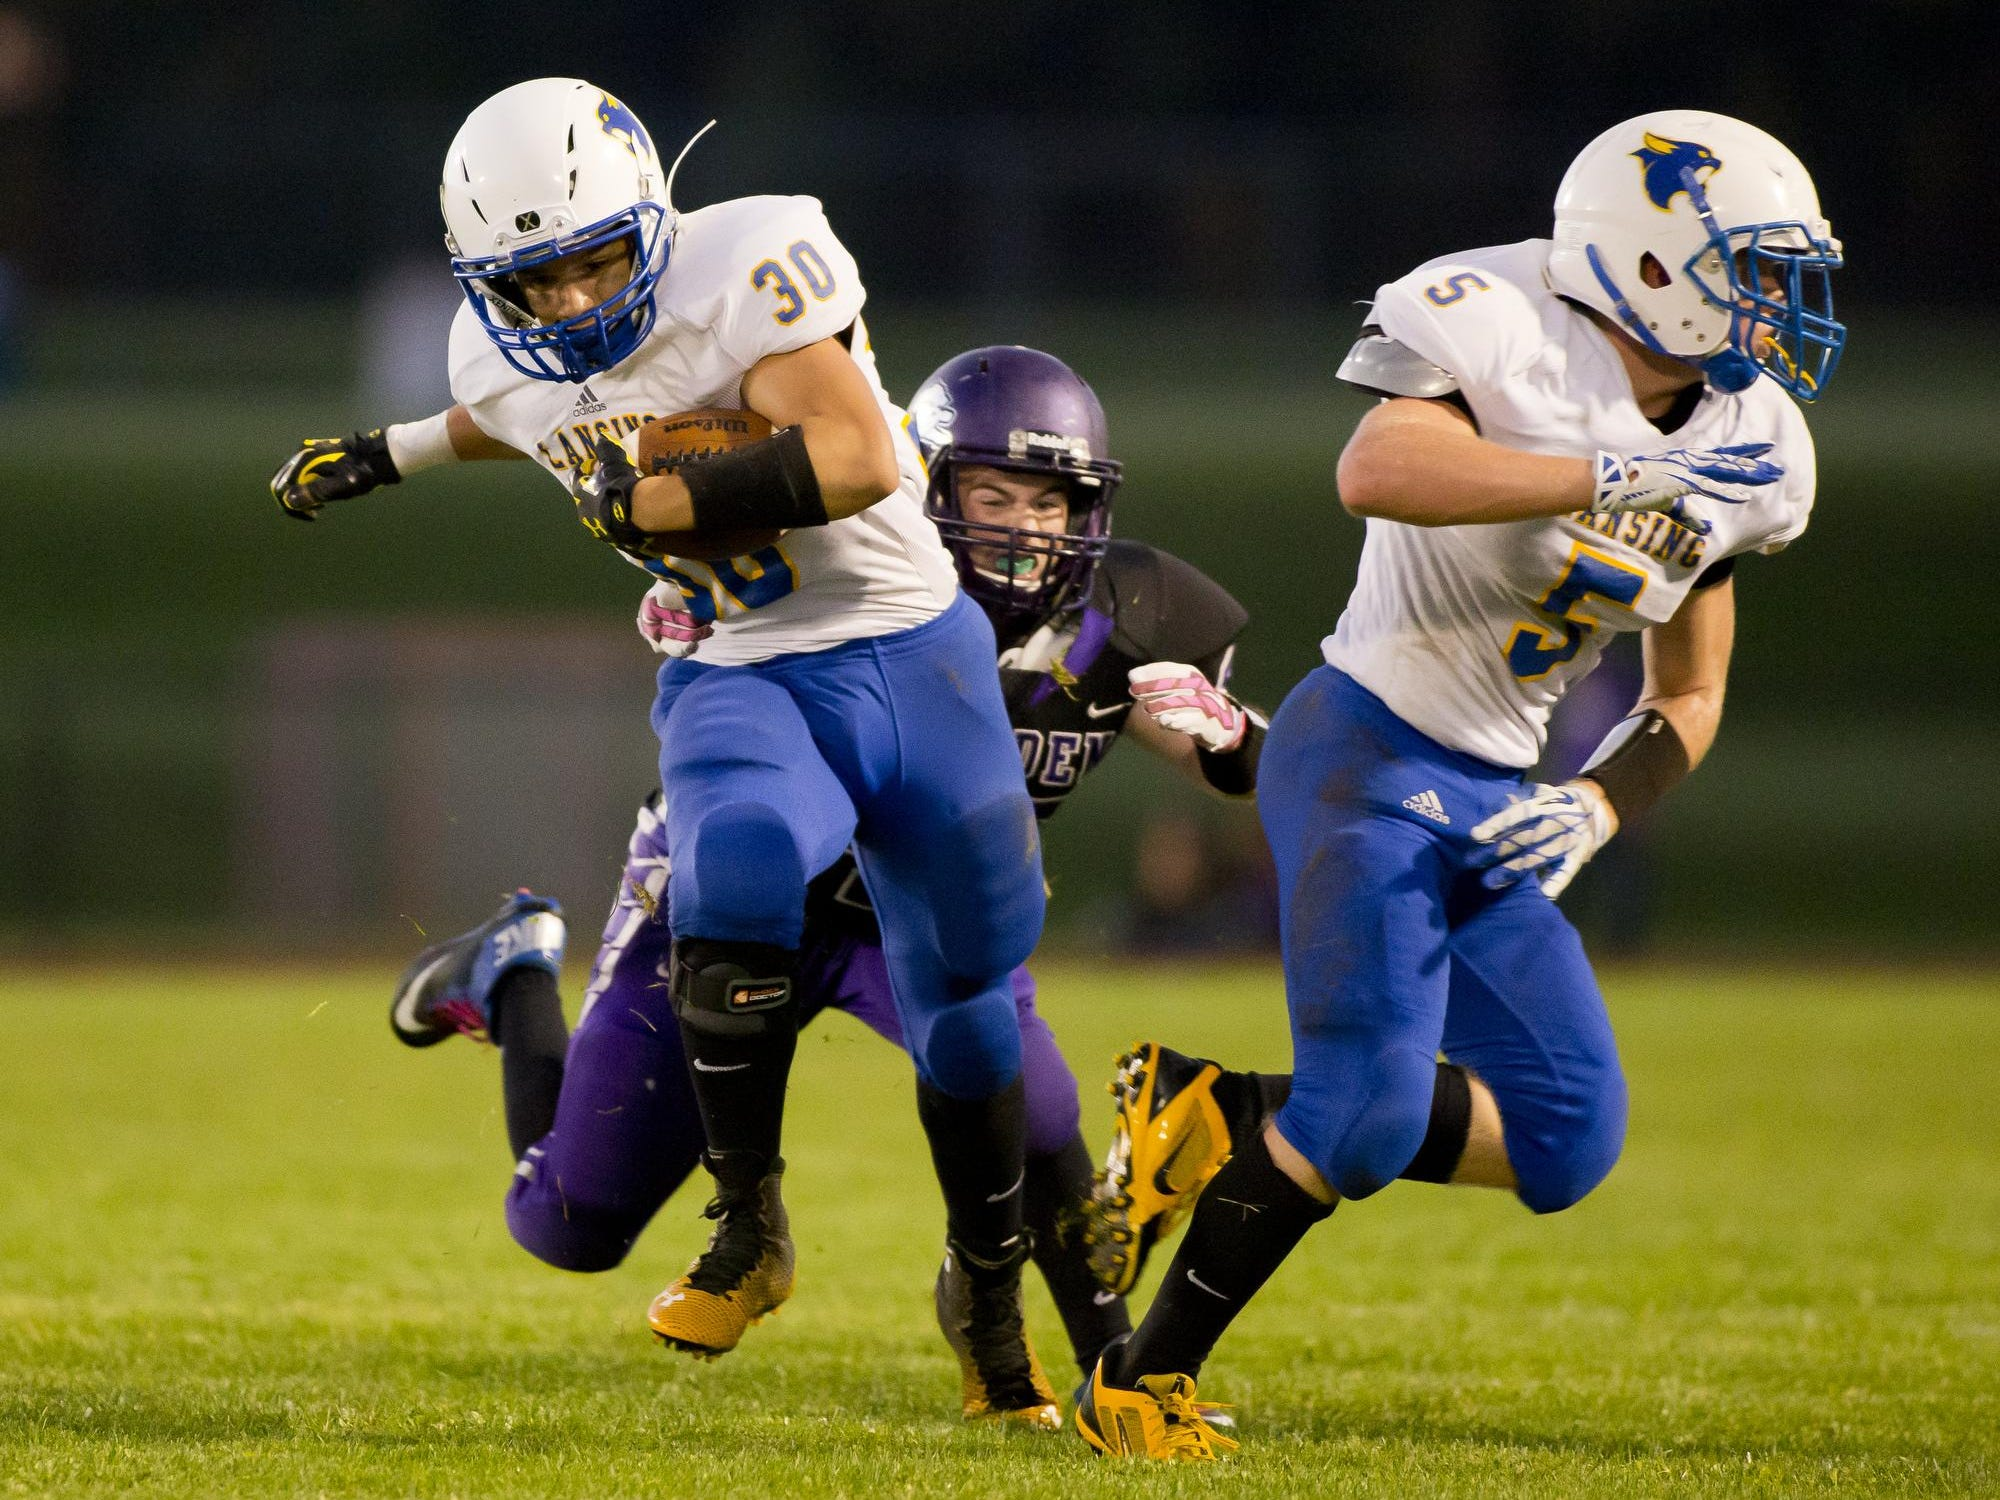 """Lansing's Tim Kelley, left, shown in action last season against Dryden, rushed for more than 1,000 yards as a sophomore. Bobcats coach John Winslow said the 5-9, 180-pound Kelley will be """"the best football player ever to graduate from Lansing High School."""""""